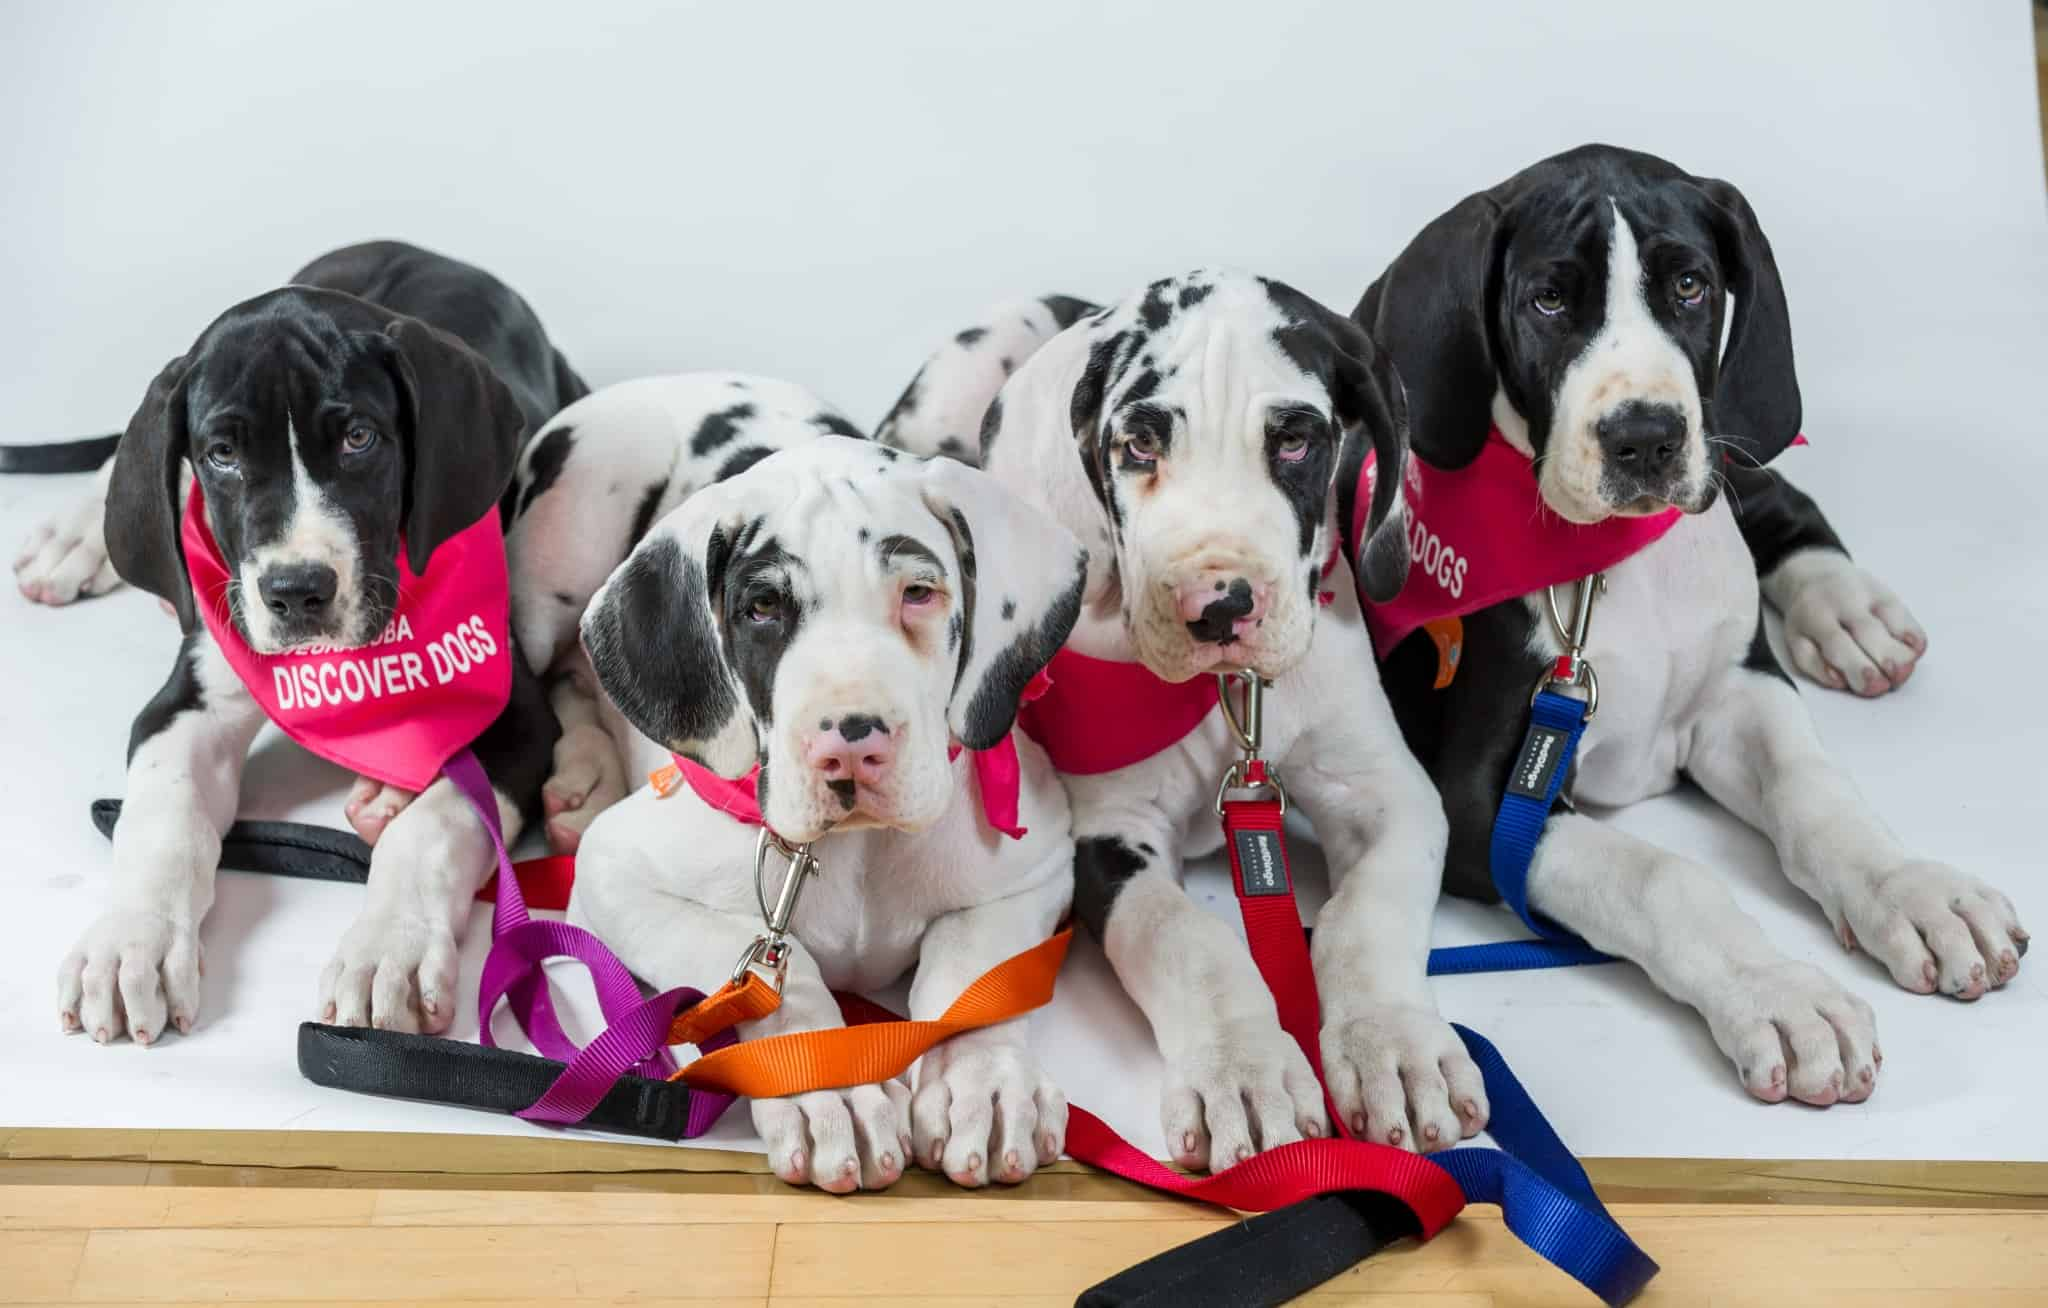 pup speed dating london